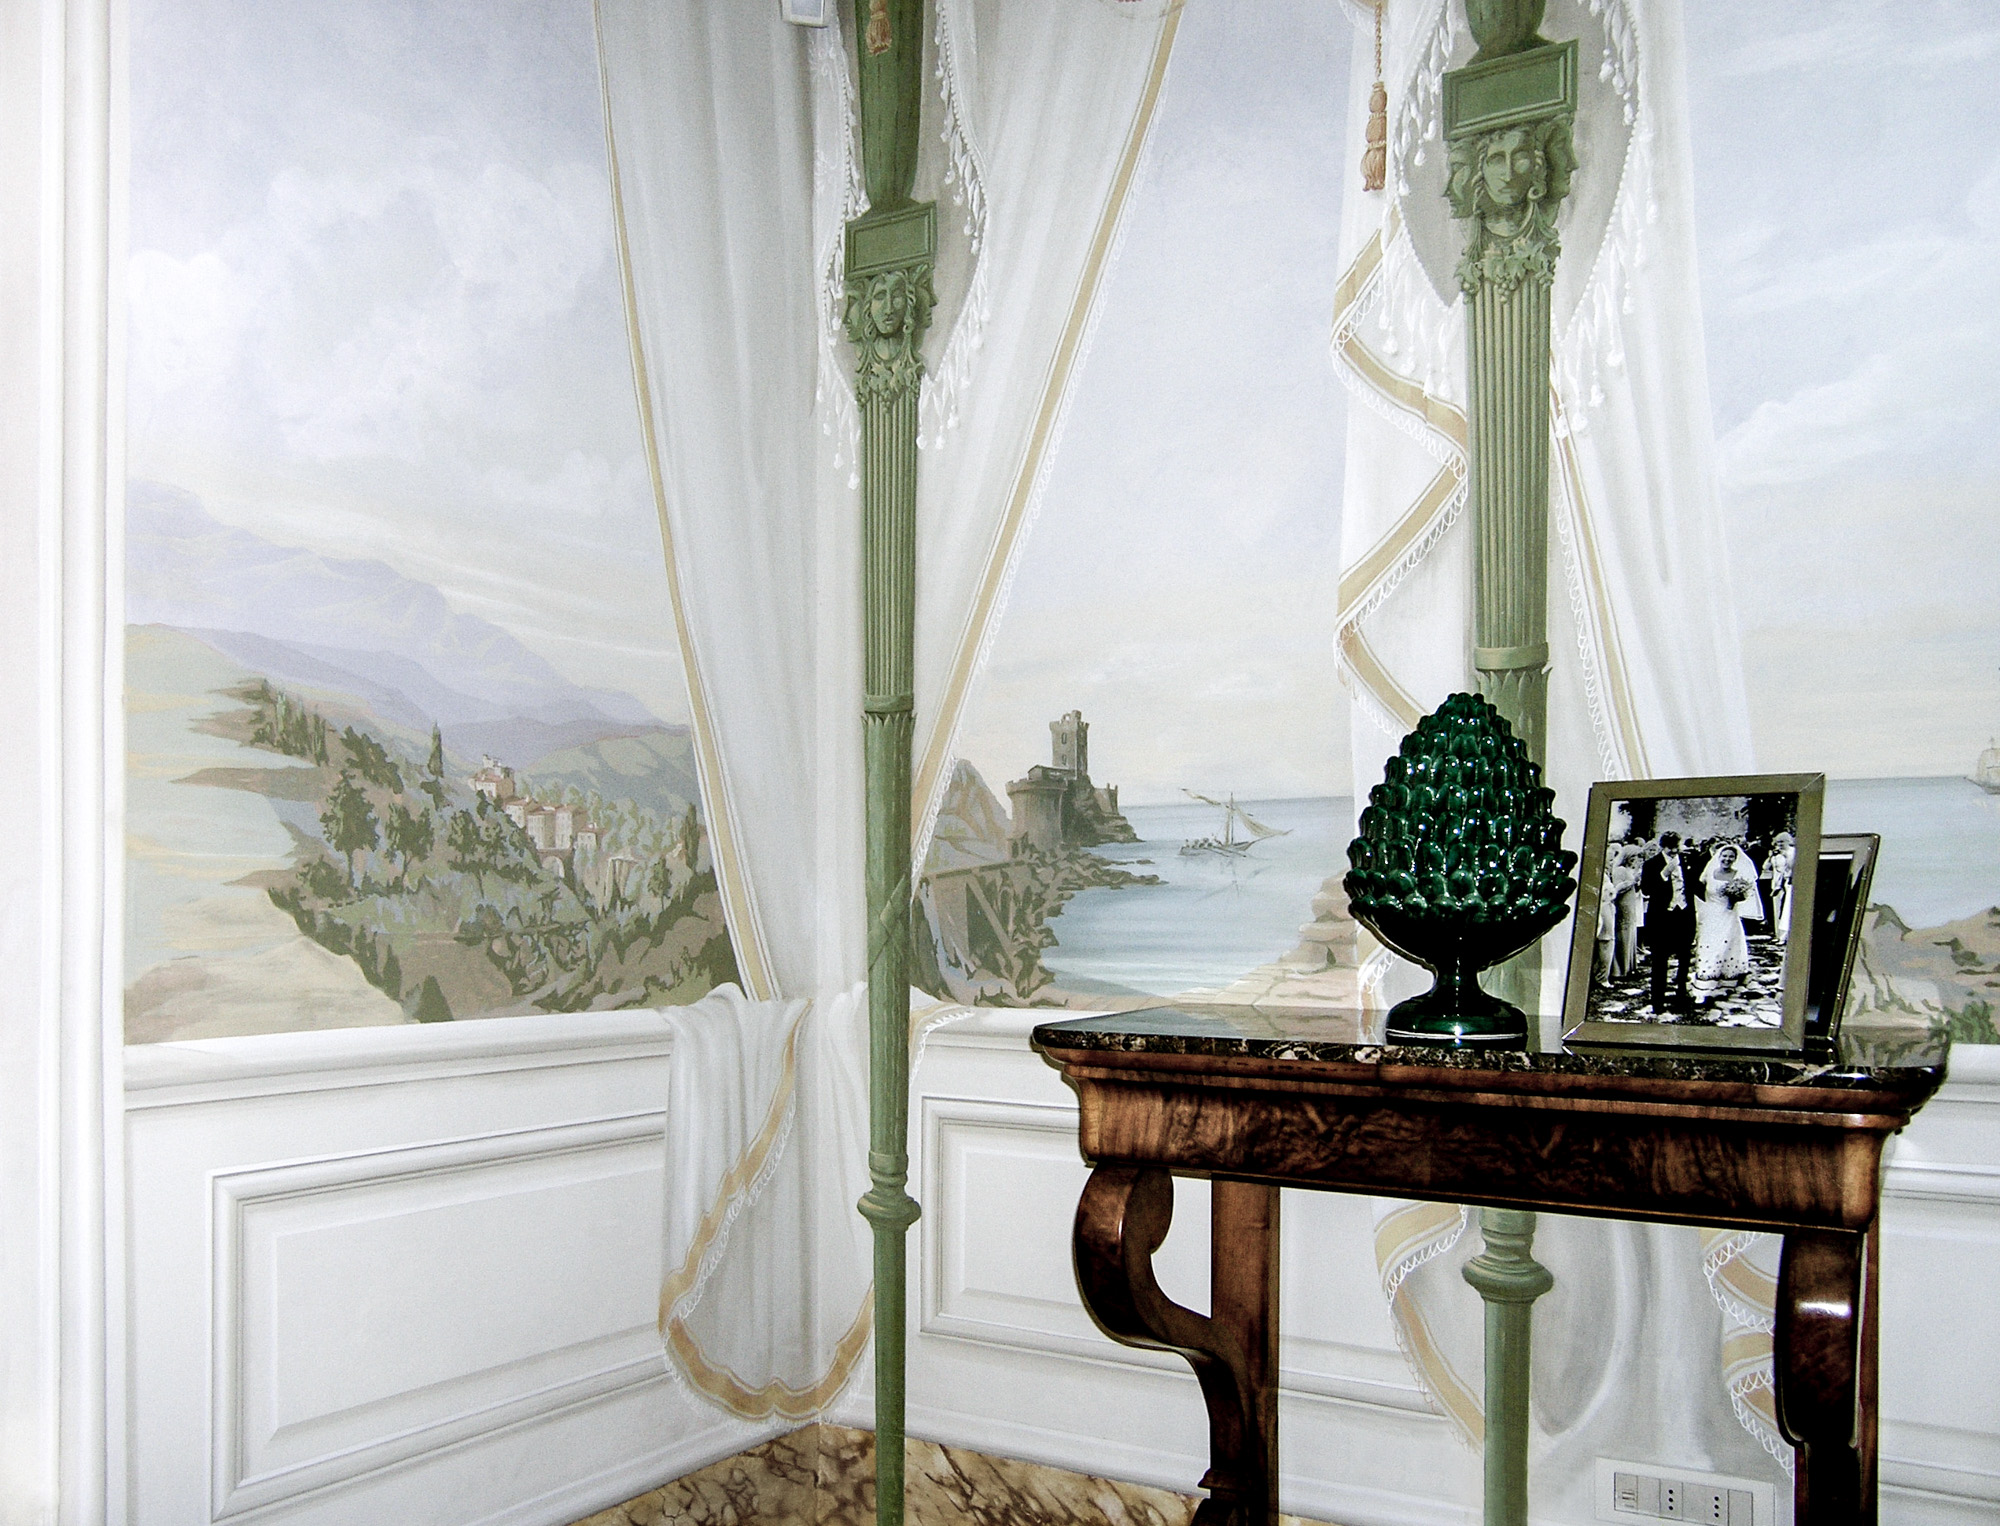 Tented room - Alexander Hamilton - Decorative Artist - London